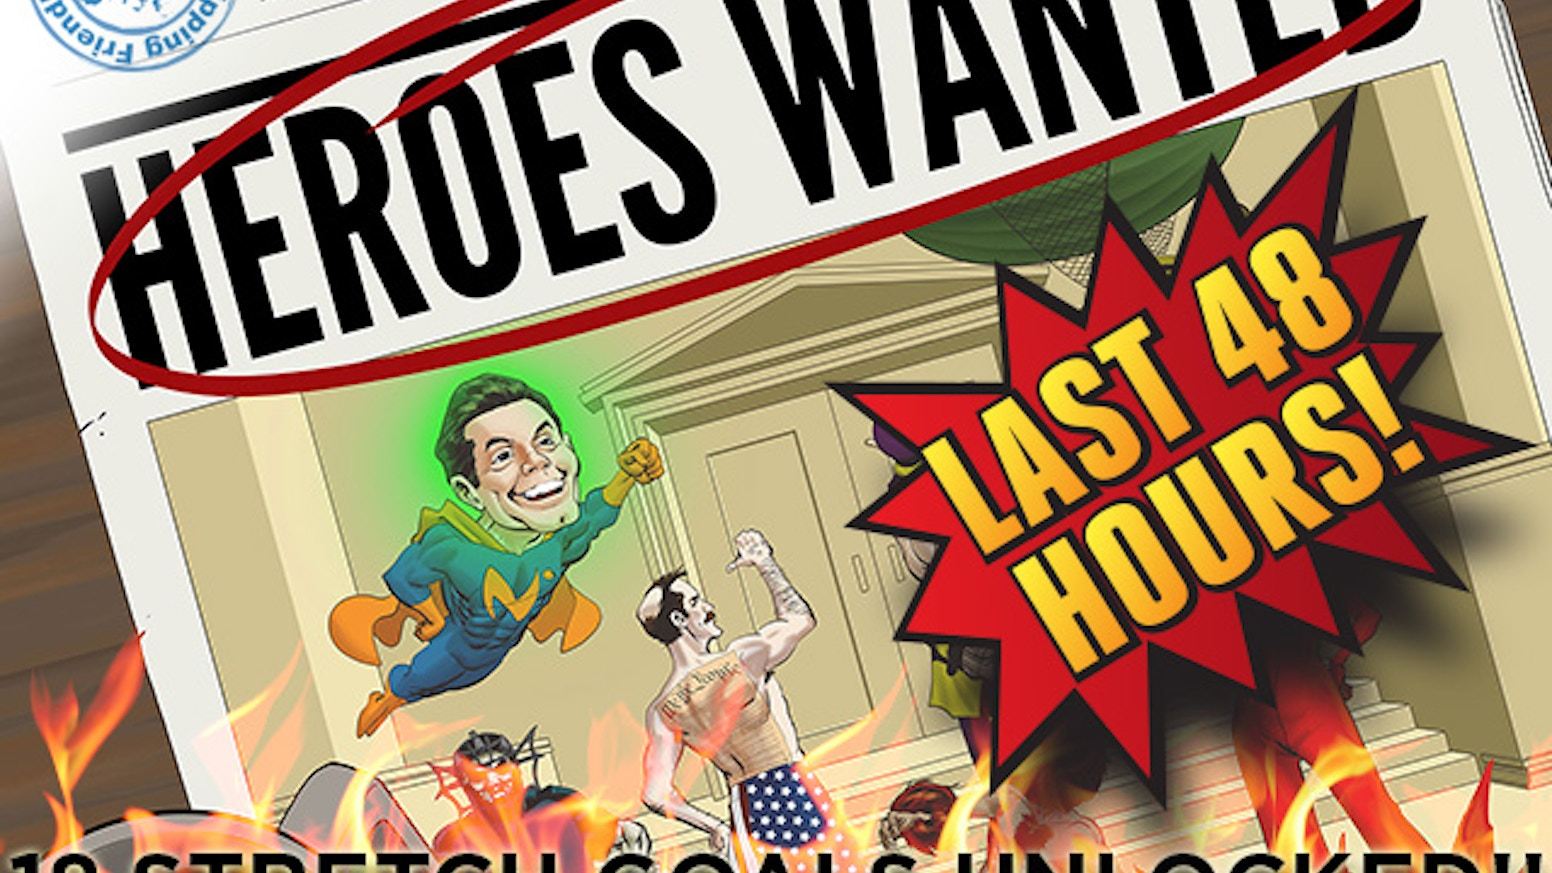 Heroes Wanted is a tactical board game for 1-5 superhero hopefuls eager to join The Champions of Zeta City.